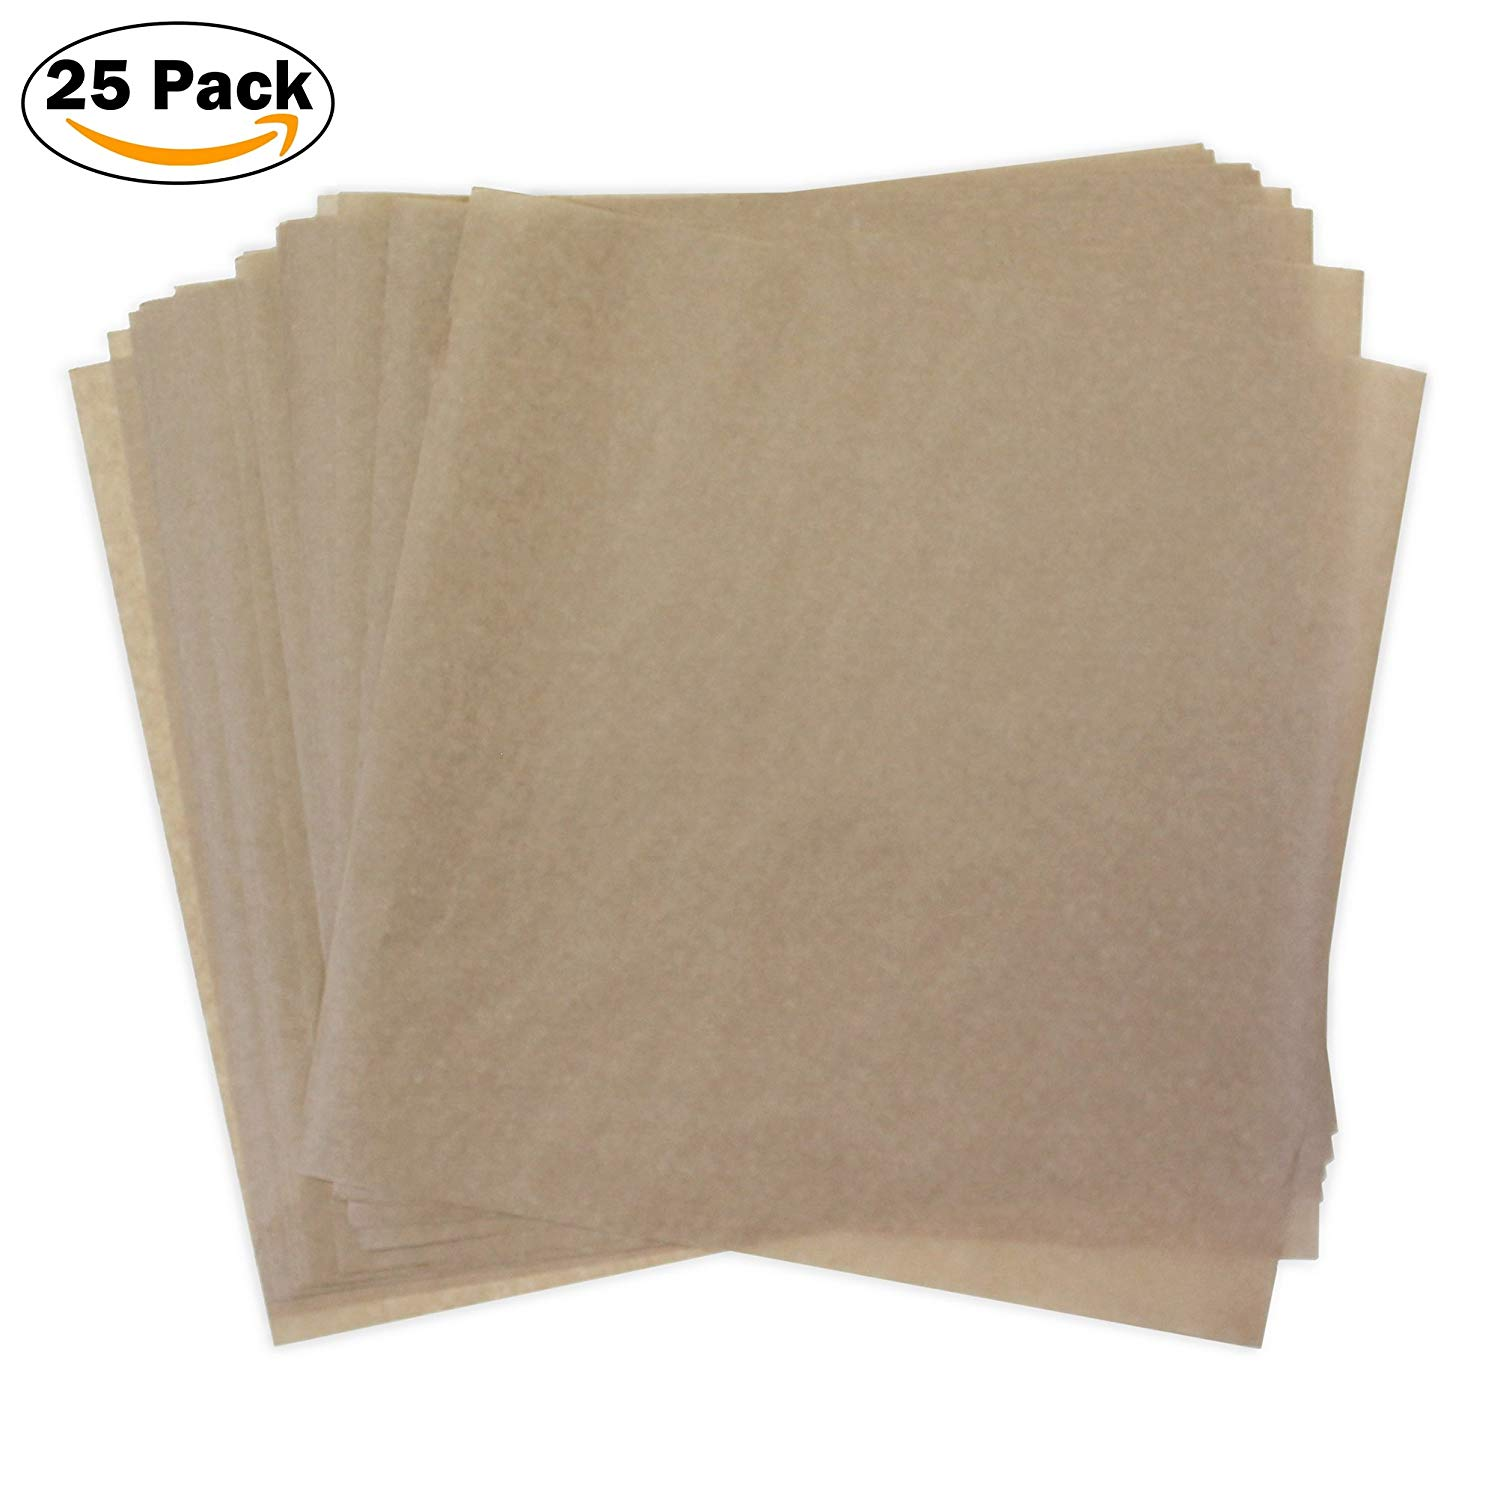 Kraft Dry Wax Paper Deli Wrap and Basket Liner (Natural Brown Kraft 12x12, pack of 25)